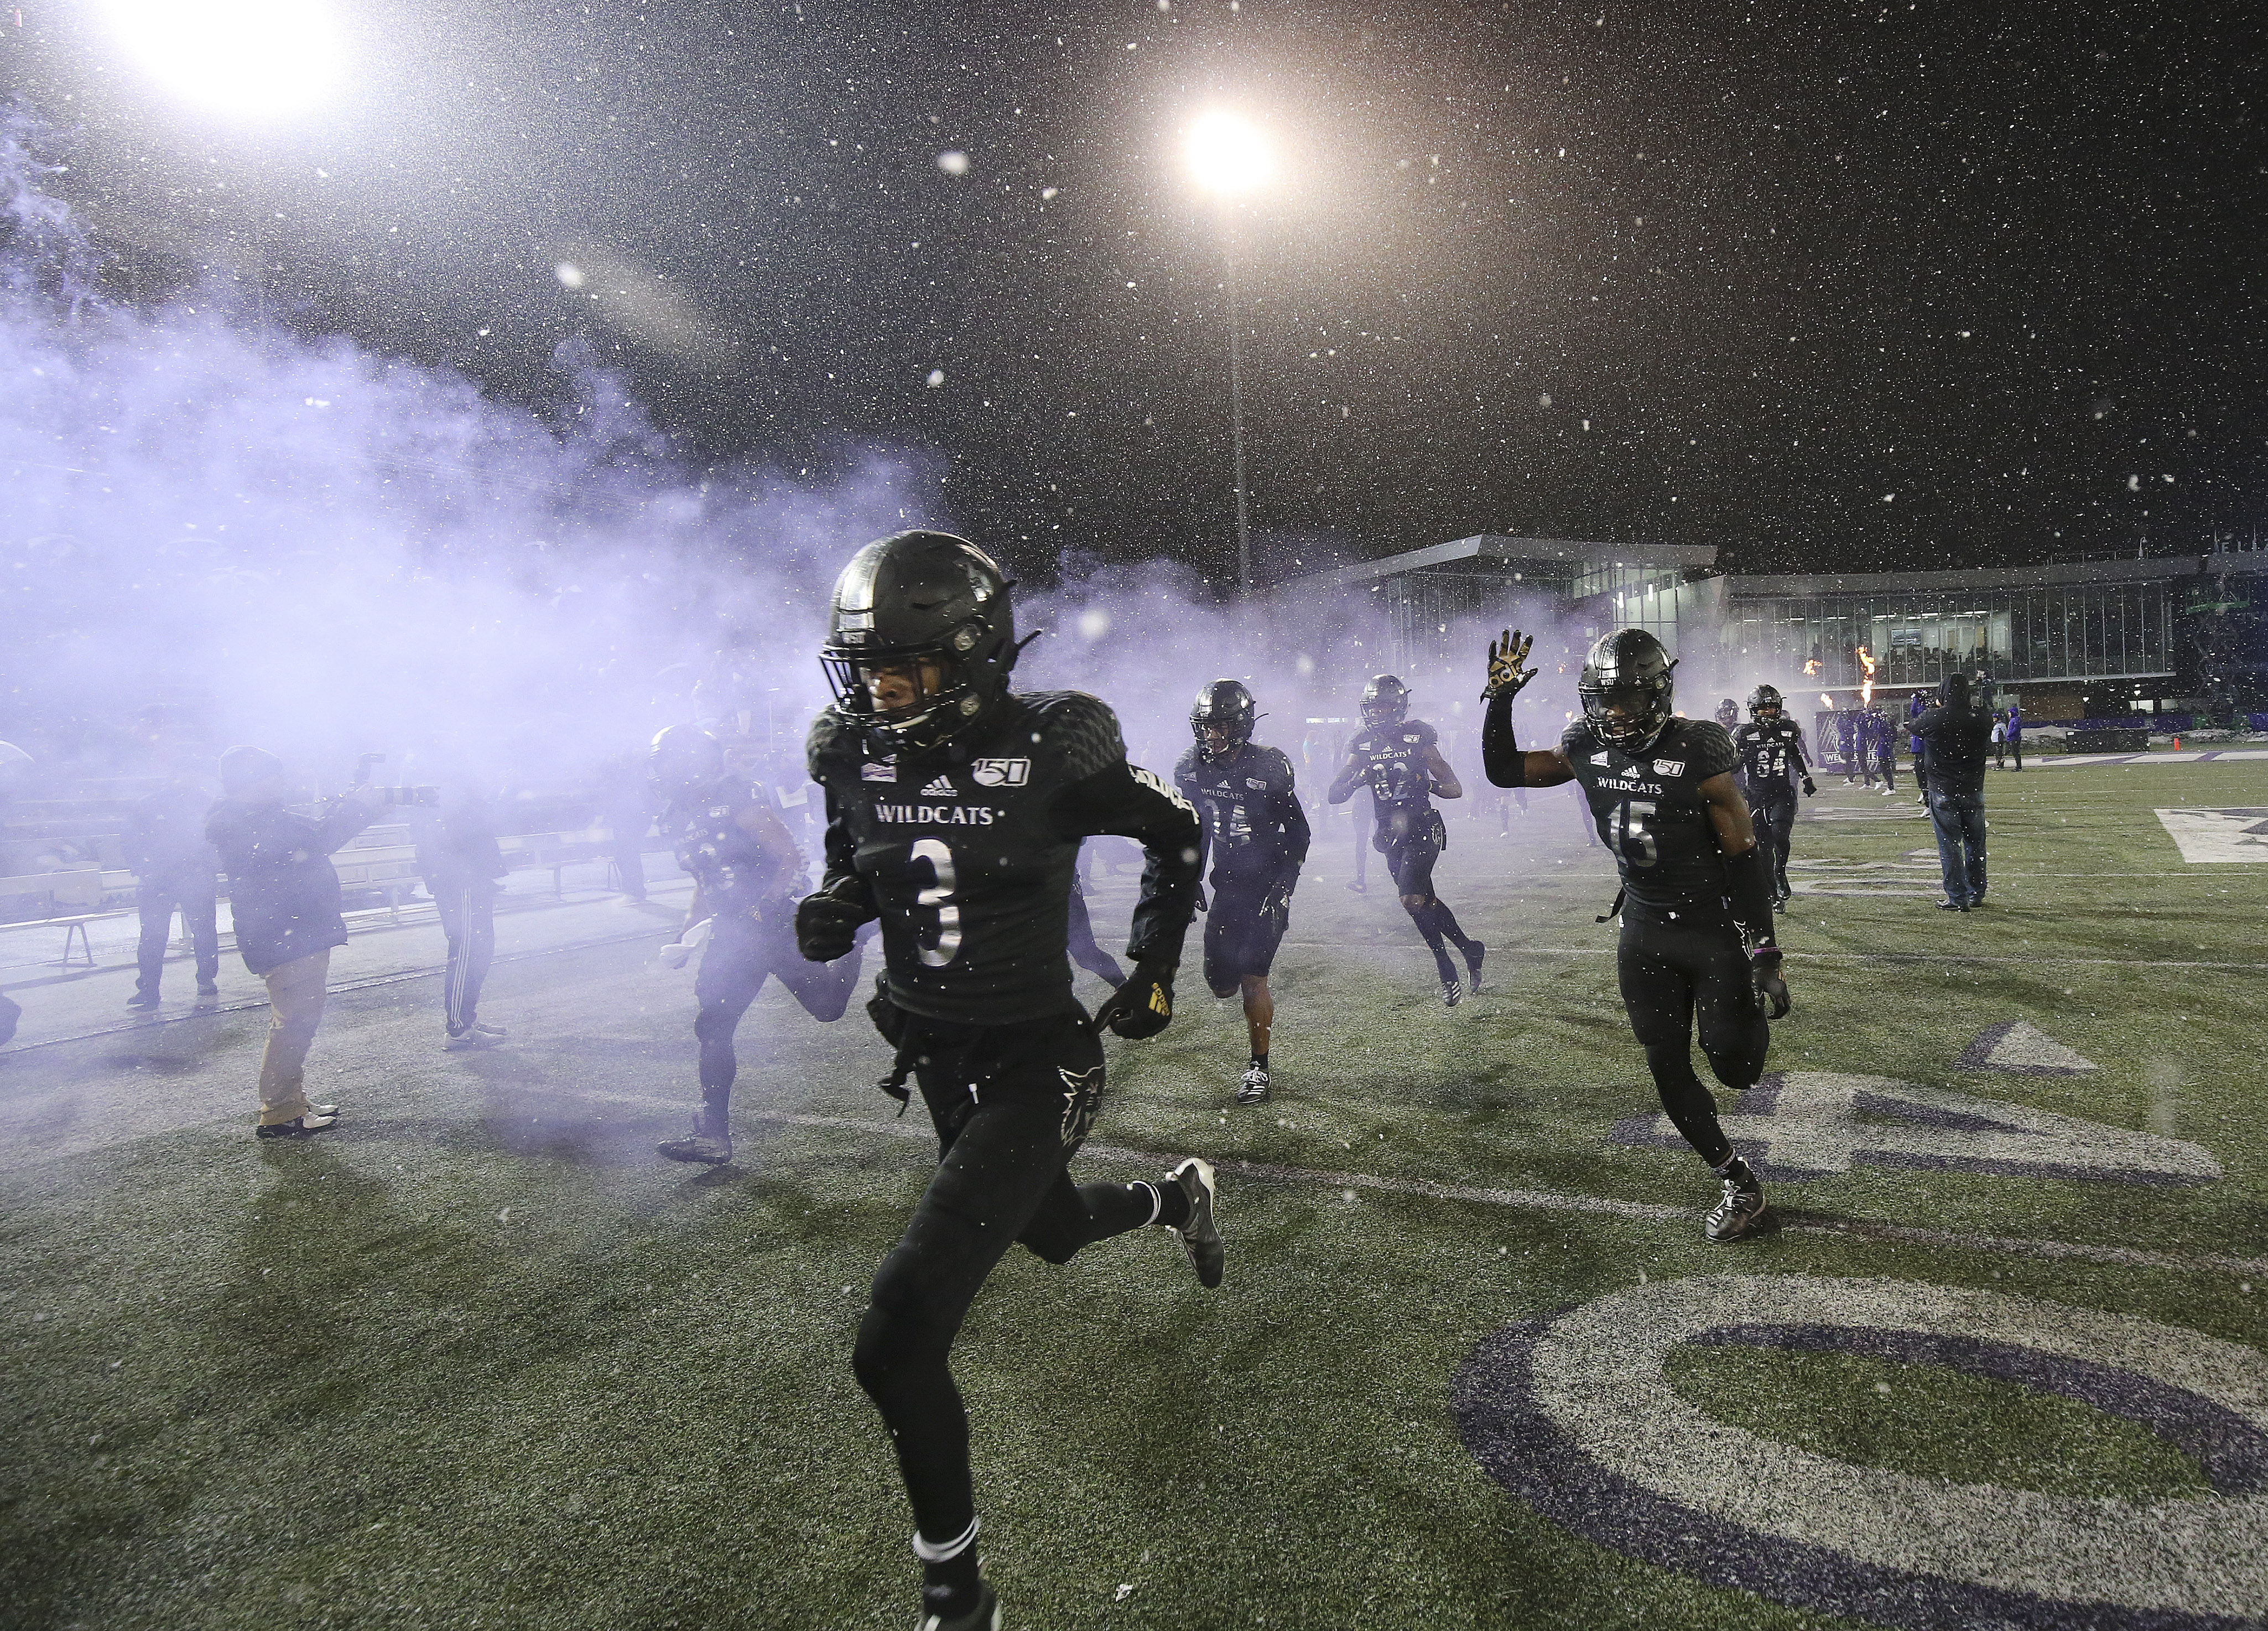 The Weber State Wildcats take the field during the FCS quarterfinals at Stewart Stadium in Ogden on Friday, Dec. 13, 2019.